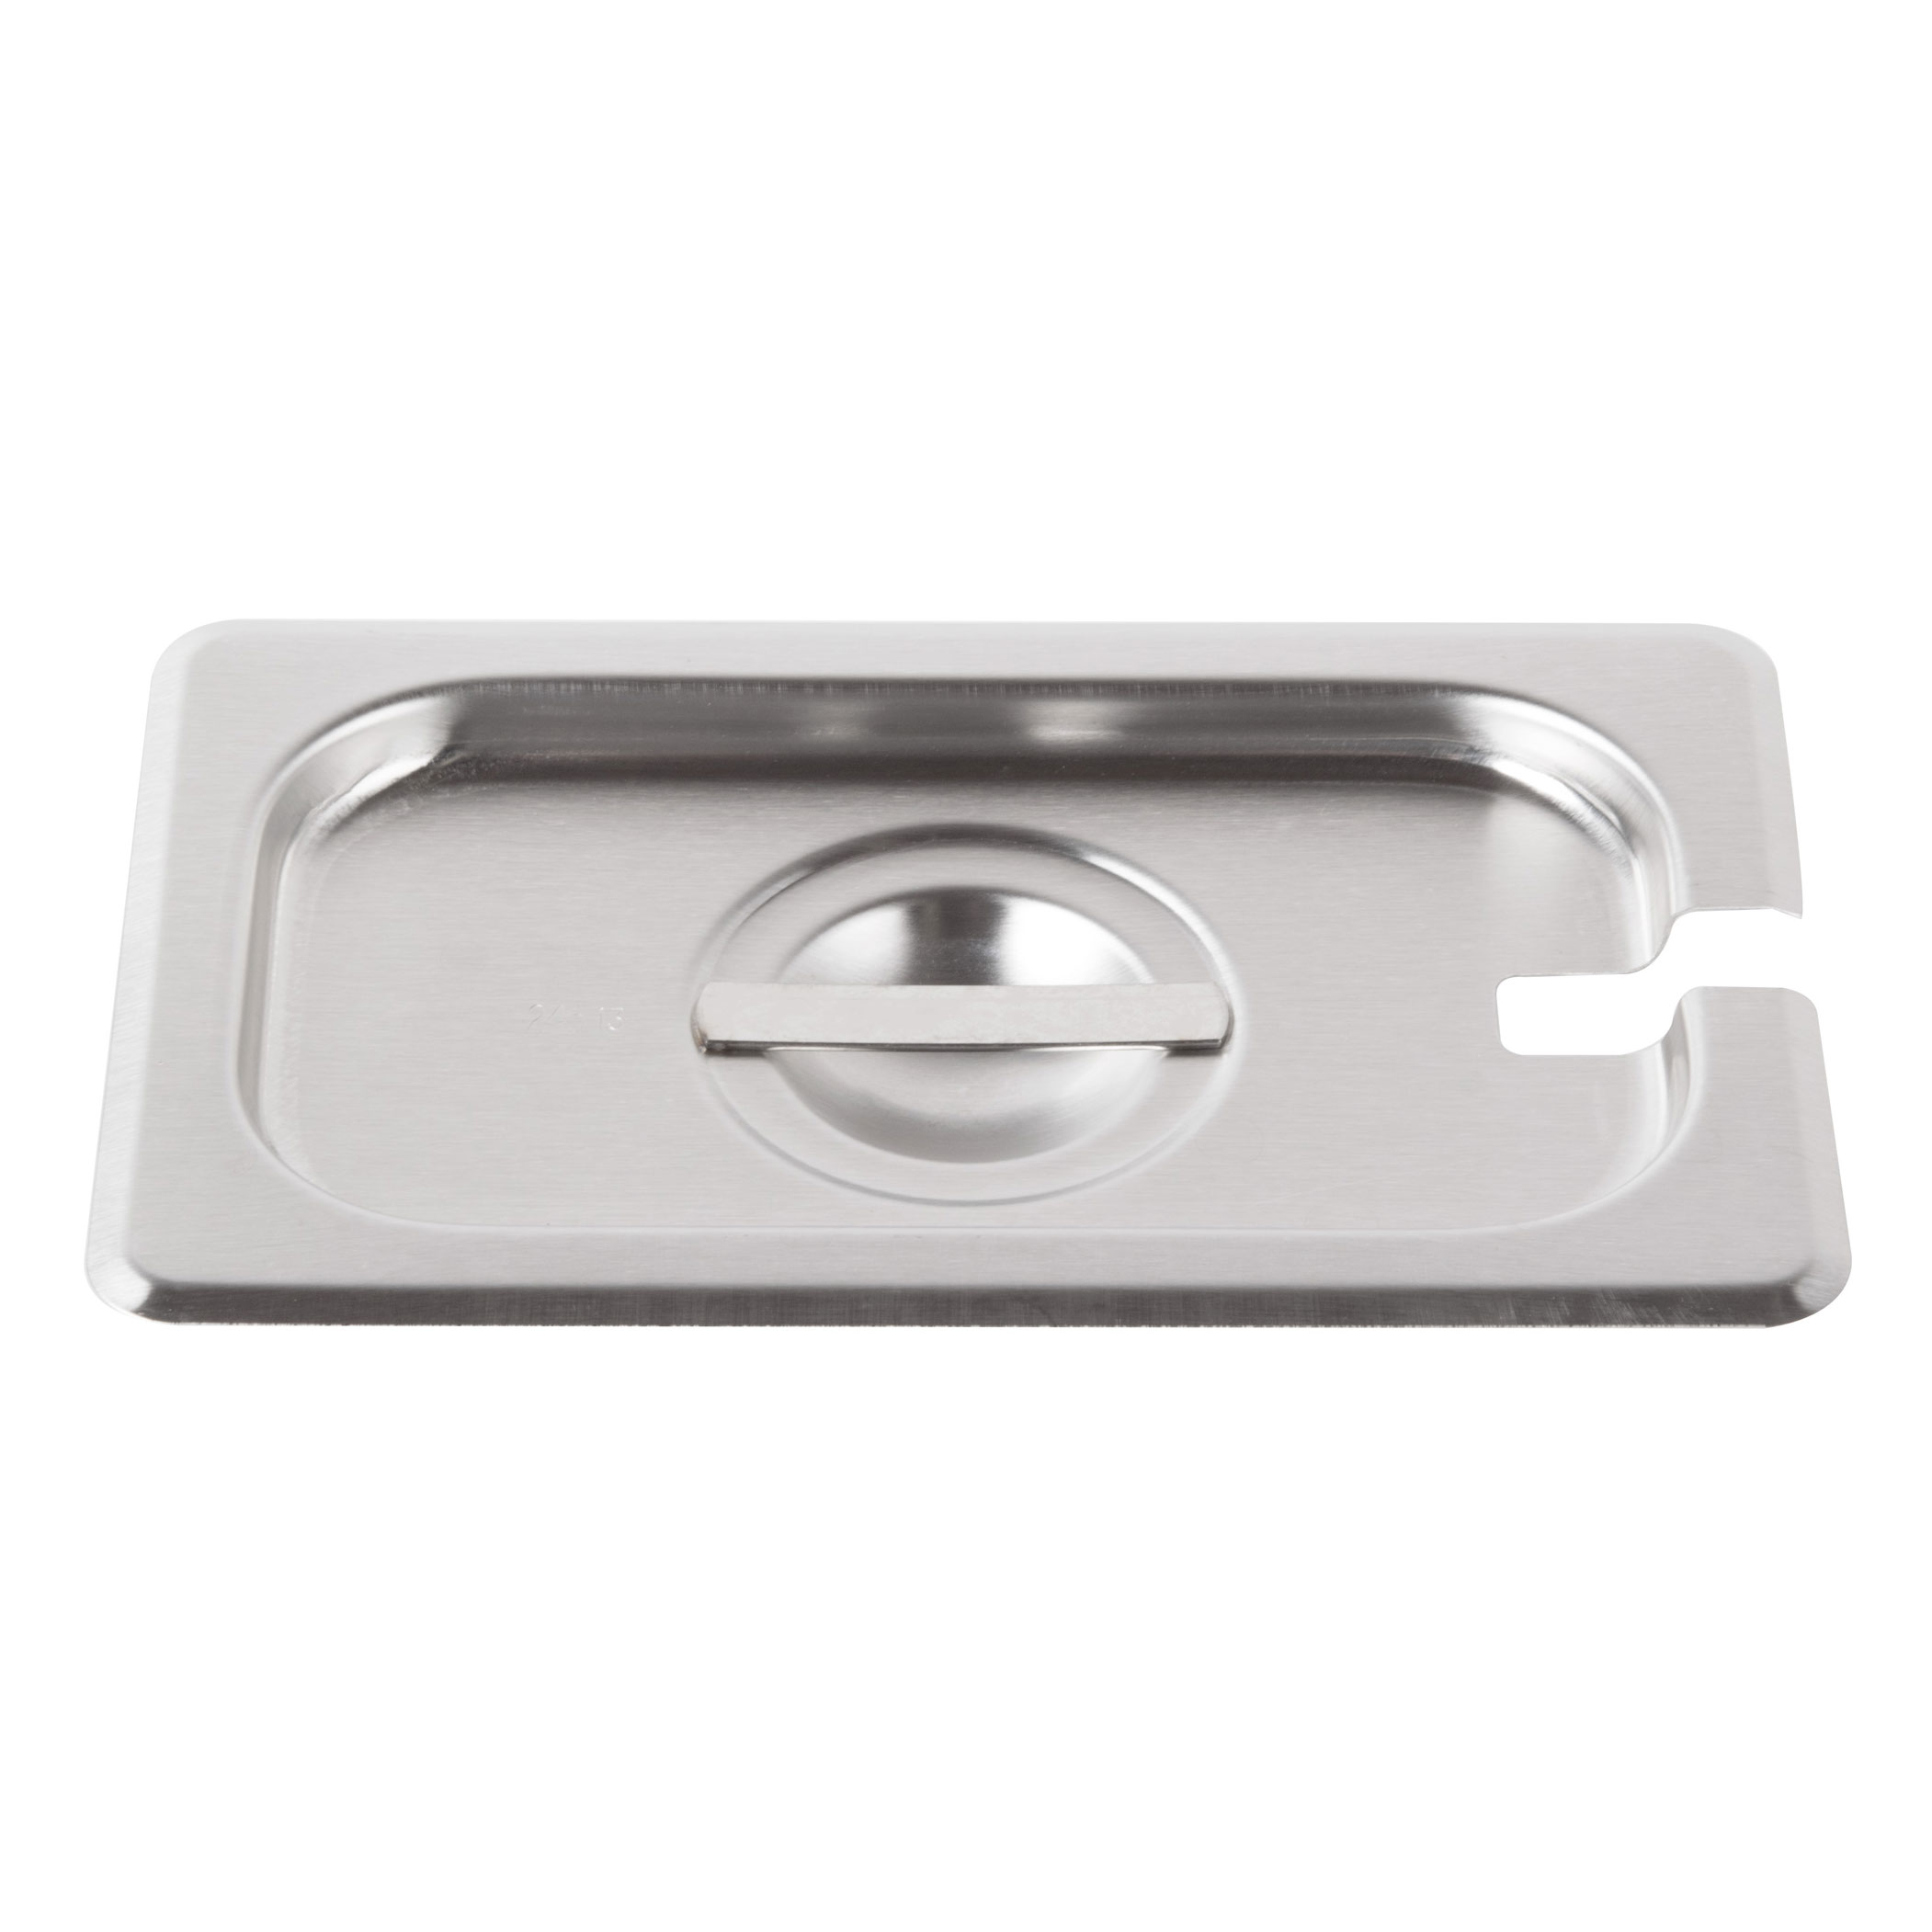 Vollrath 75460 steam table pan cover, stainless steel